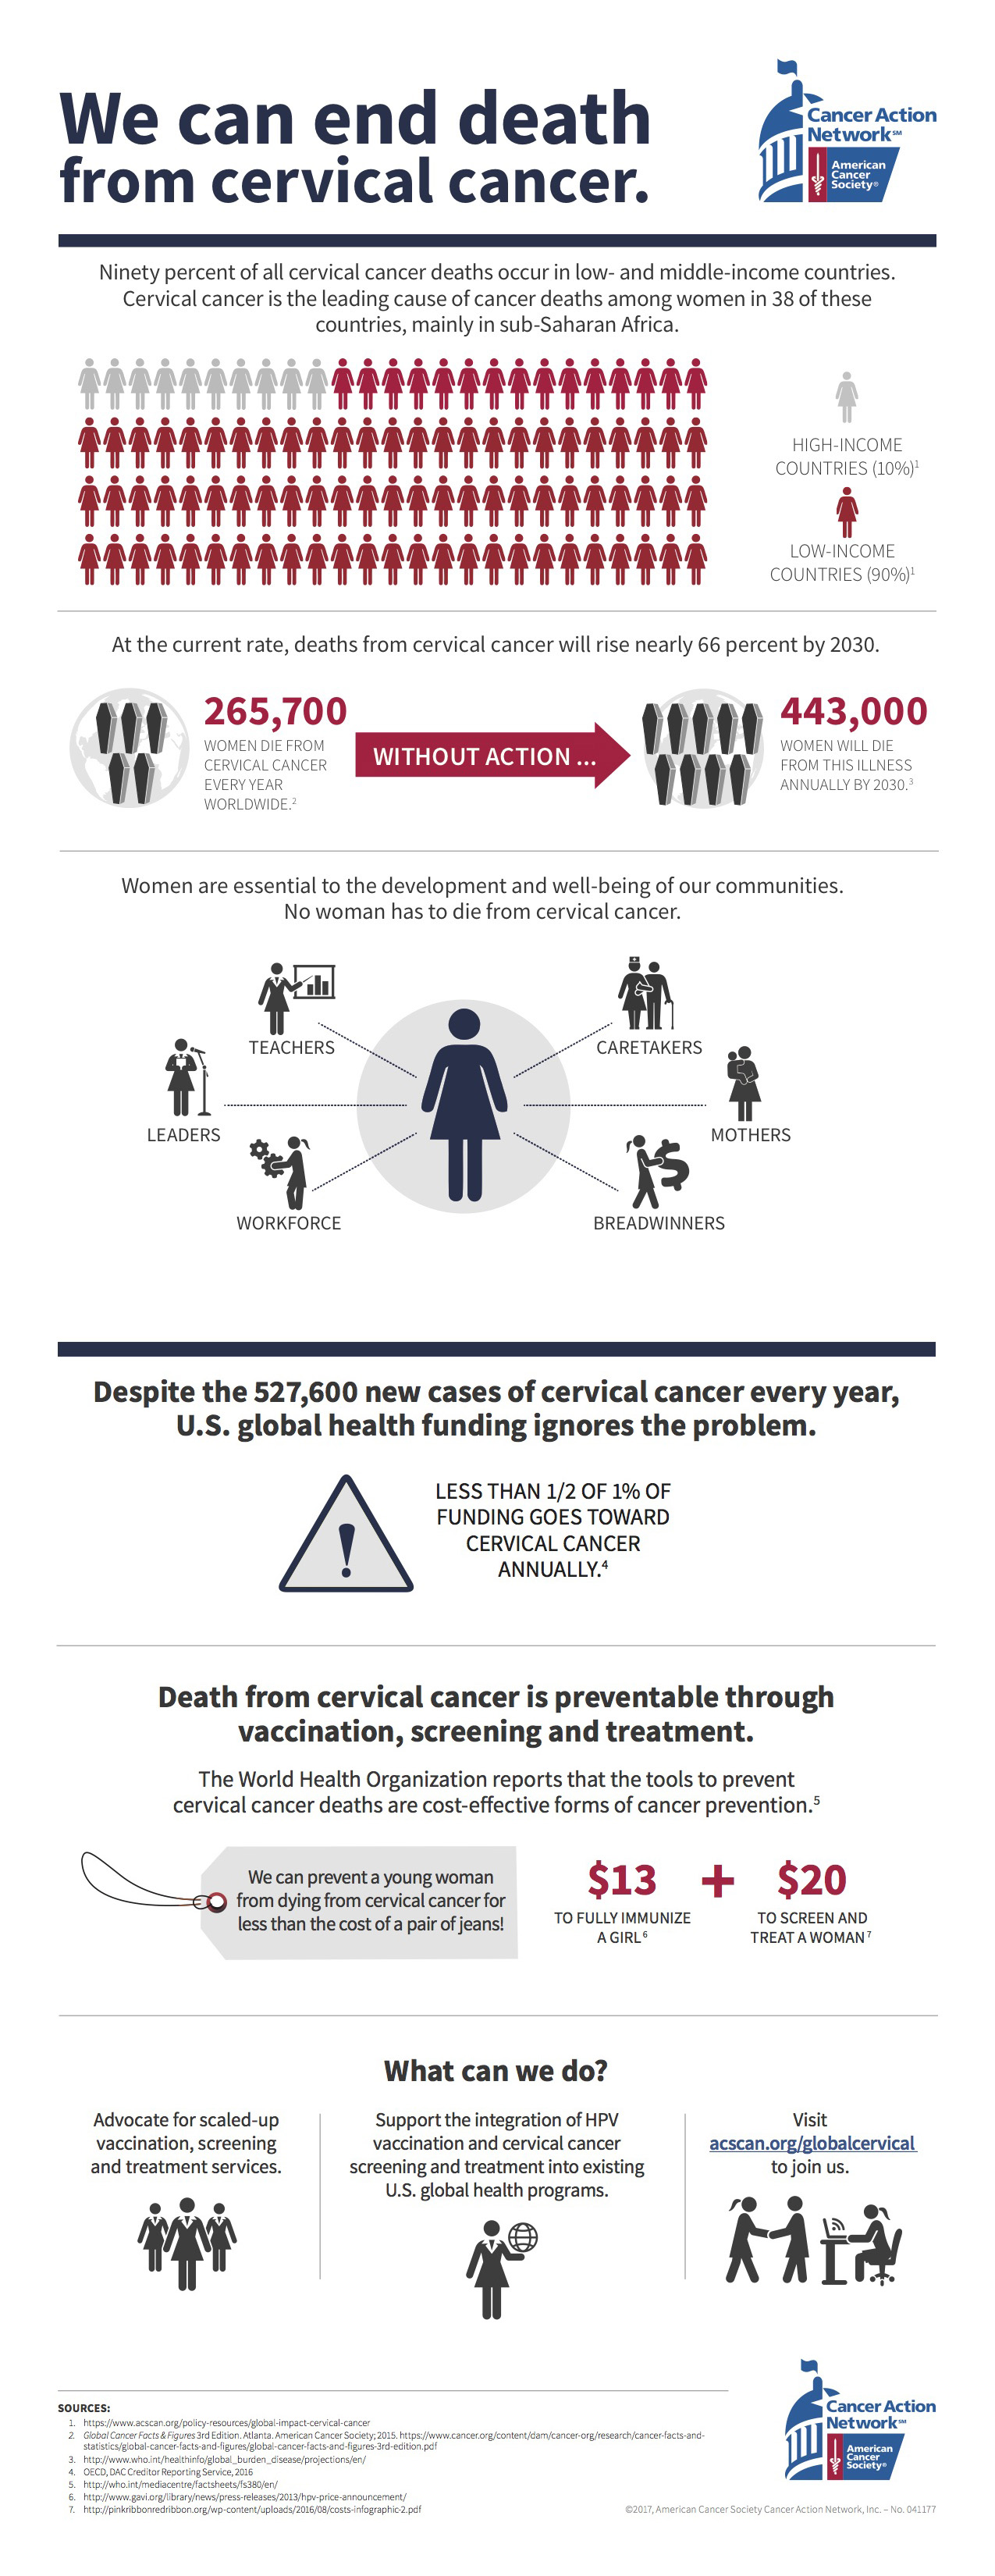 Global Cervical Cancer Infographic. A text alternative is included below the image.